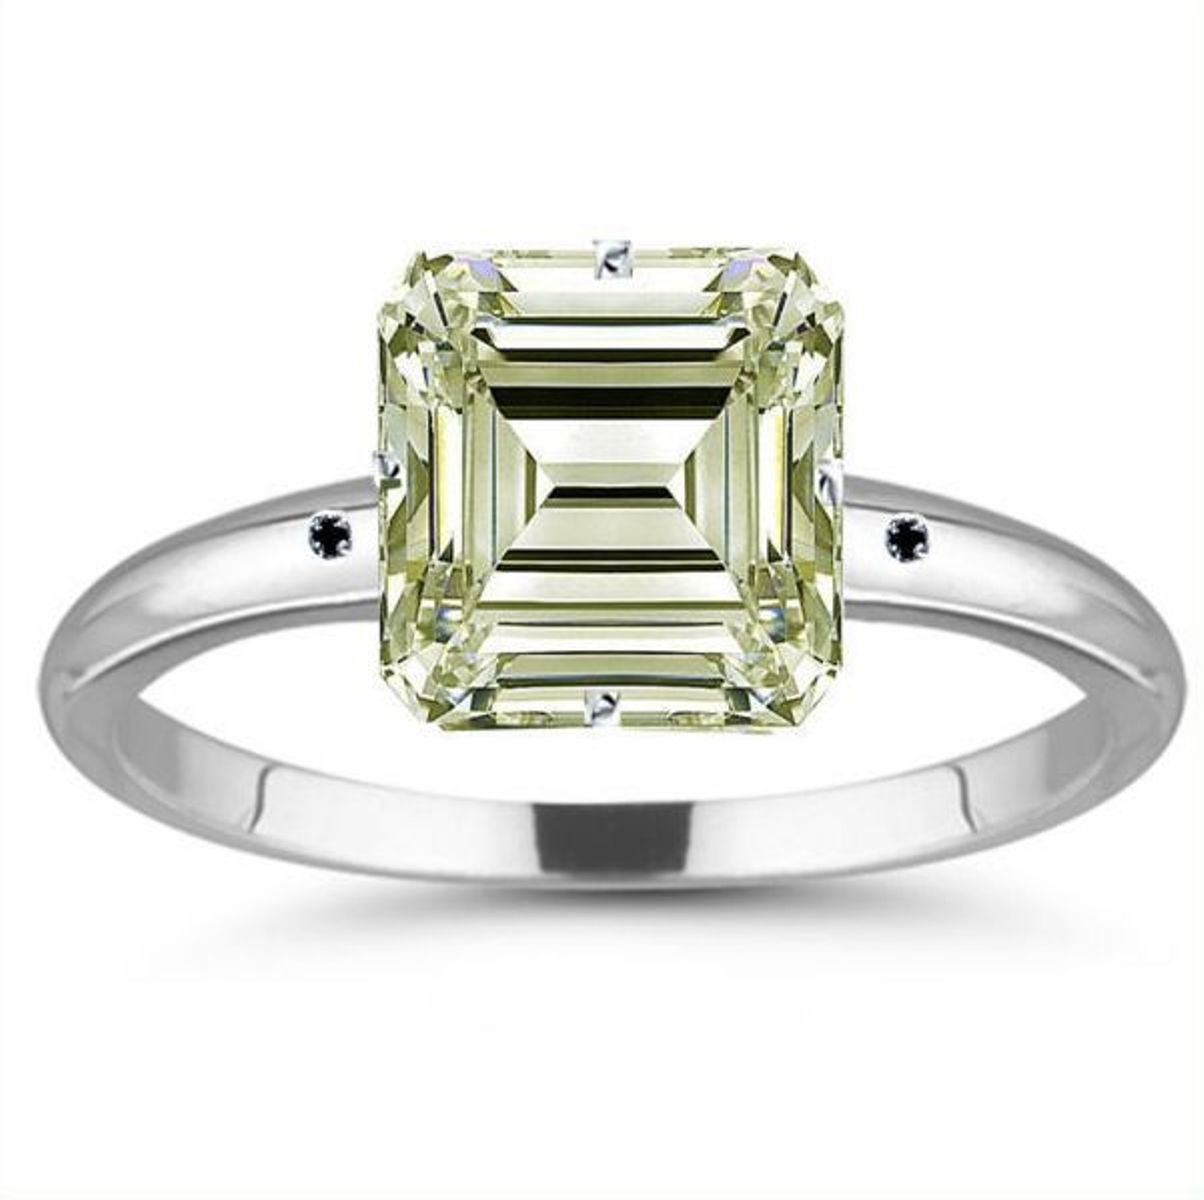 RINGJEWEL 5.60 ct VVS1 Emerald Moissanite Silver Plated Engagement Ring Off White Color Size 7.